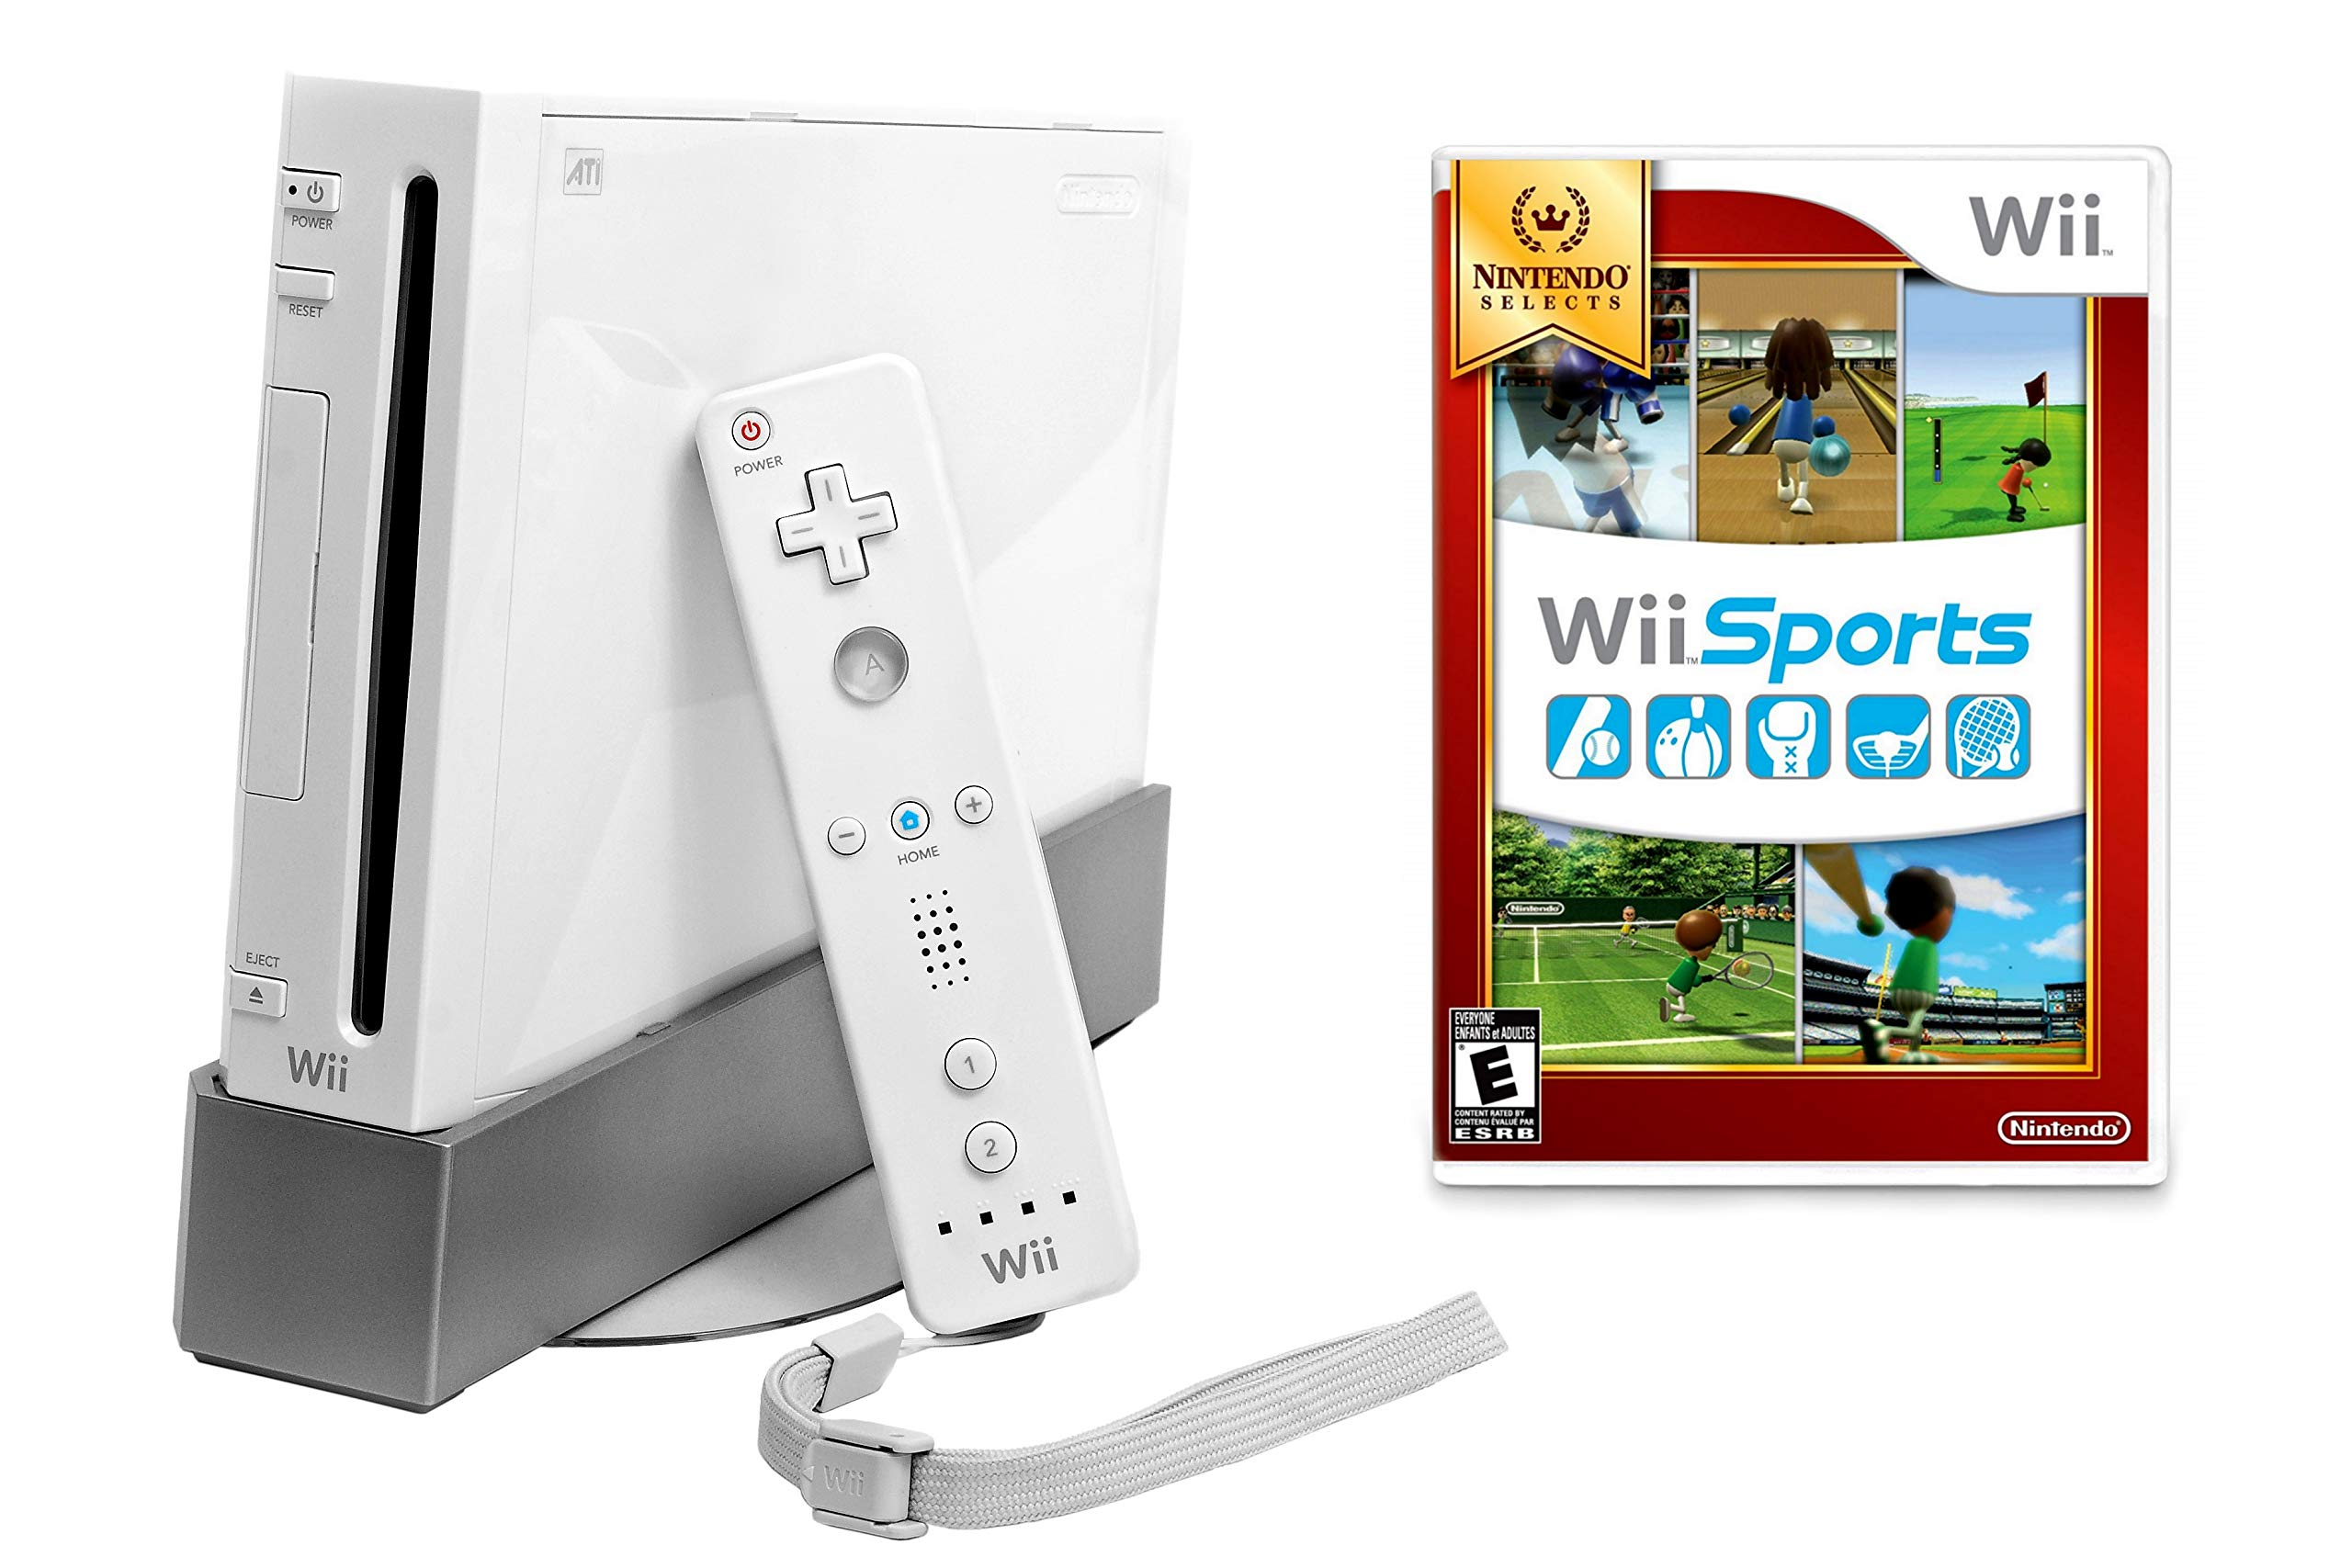 Nintendo Wii Console with Wii Sports (Renewed) by Nintendo (Image #1)